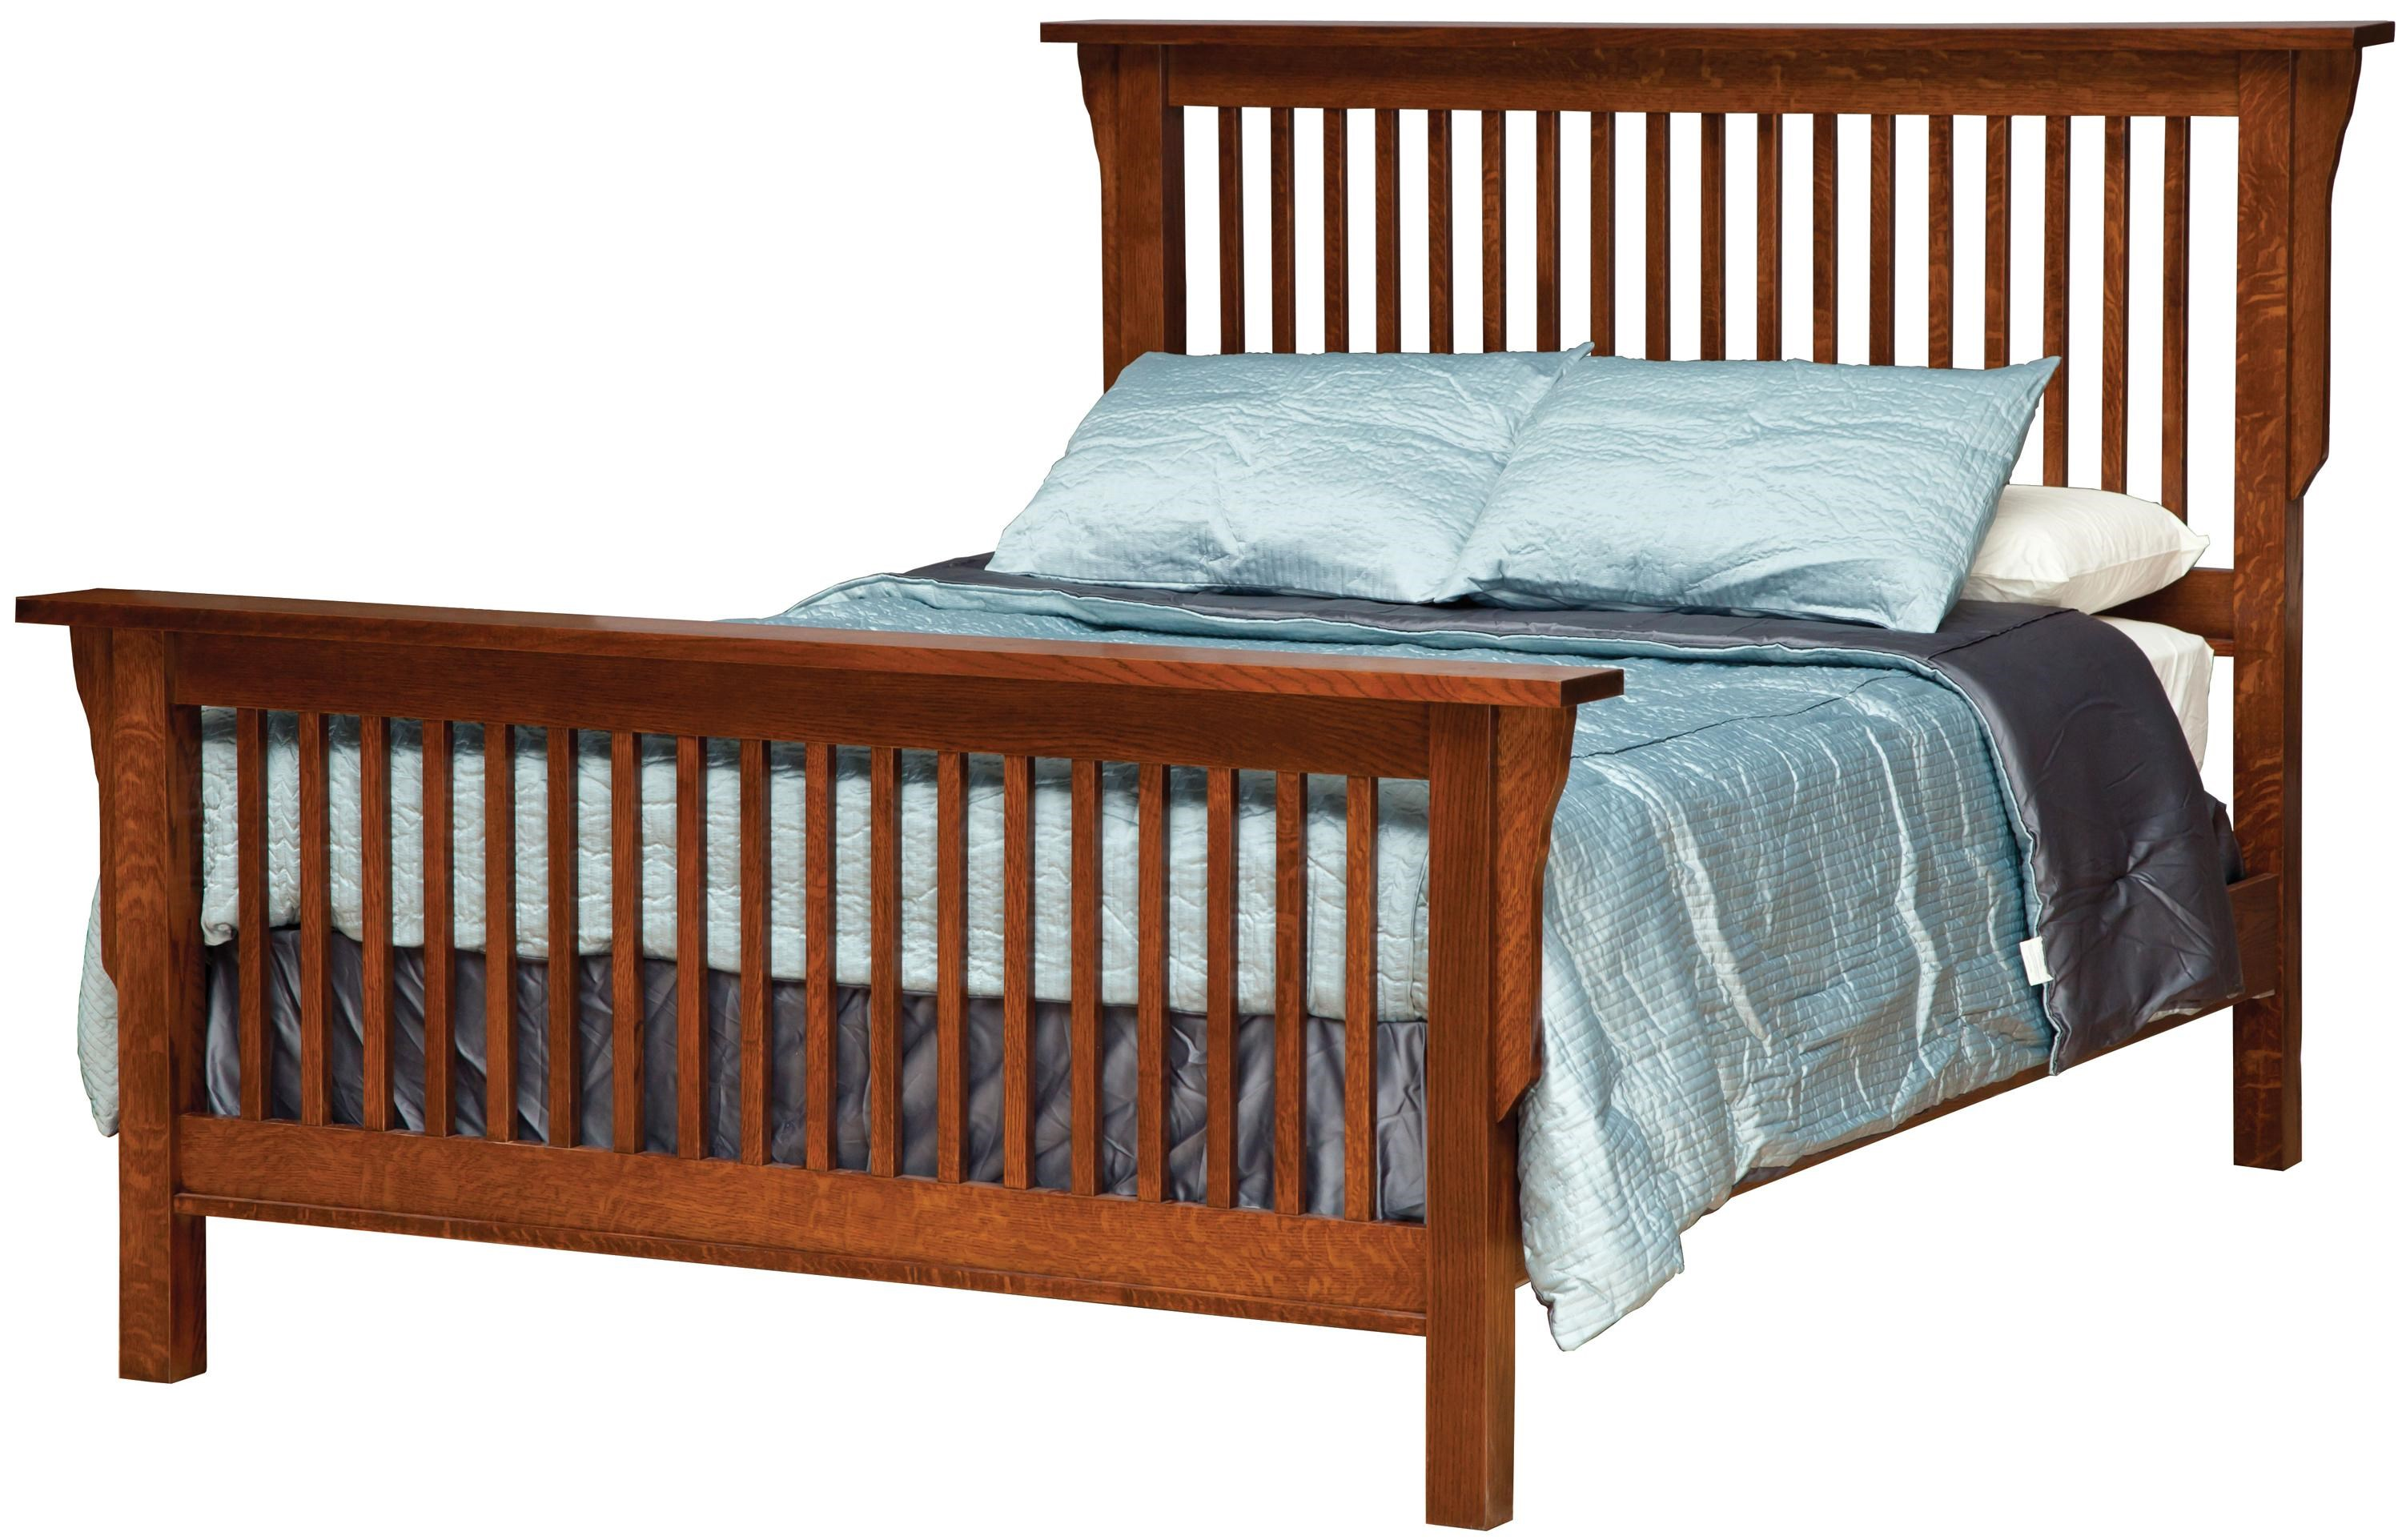 Children furniture house bed frame in FULL size or QUEEN with Headboard and SLATS